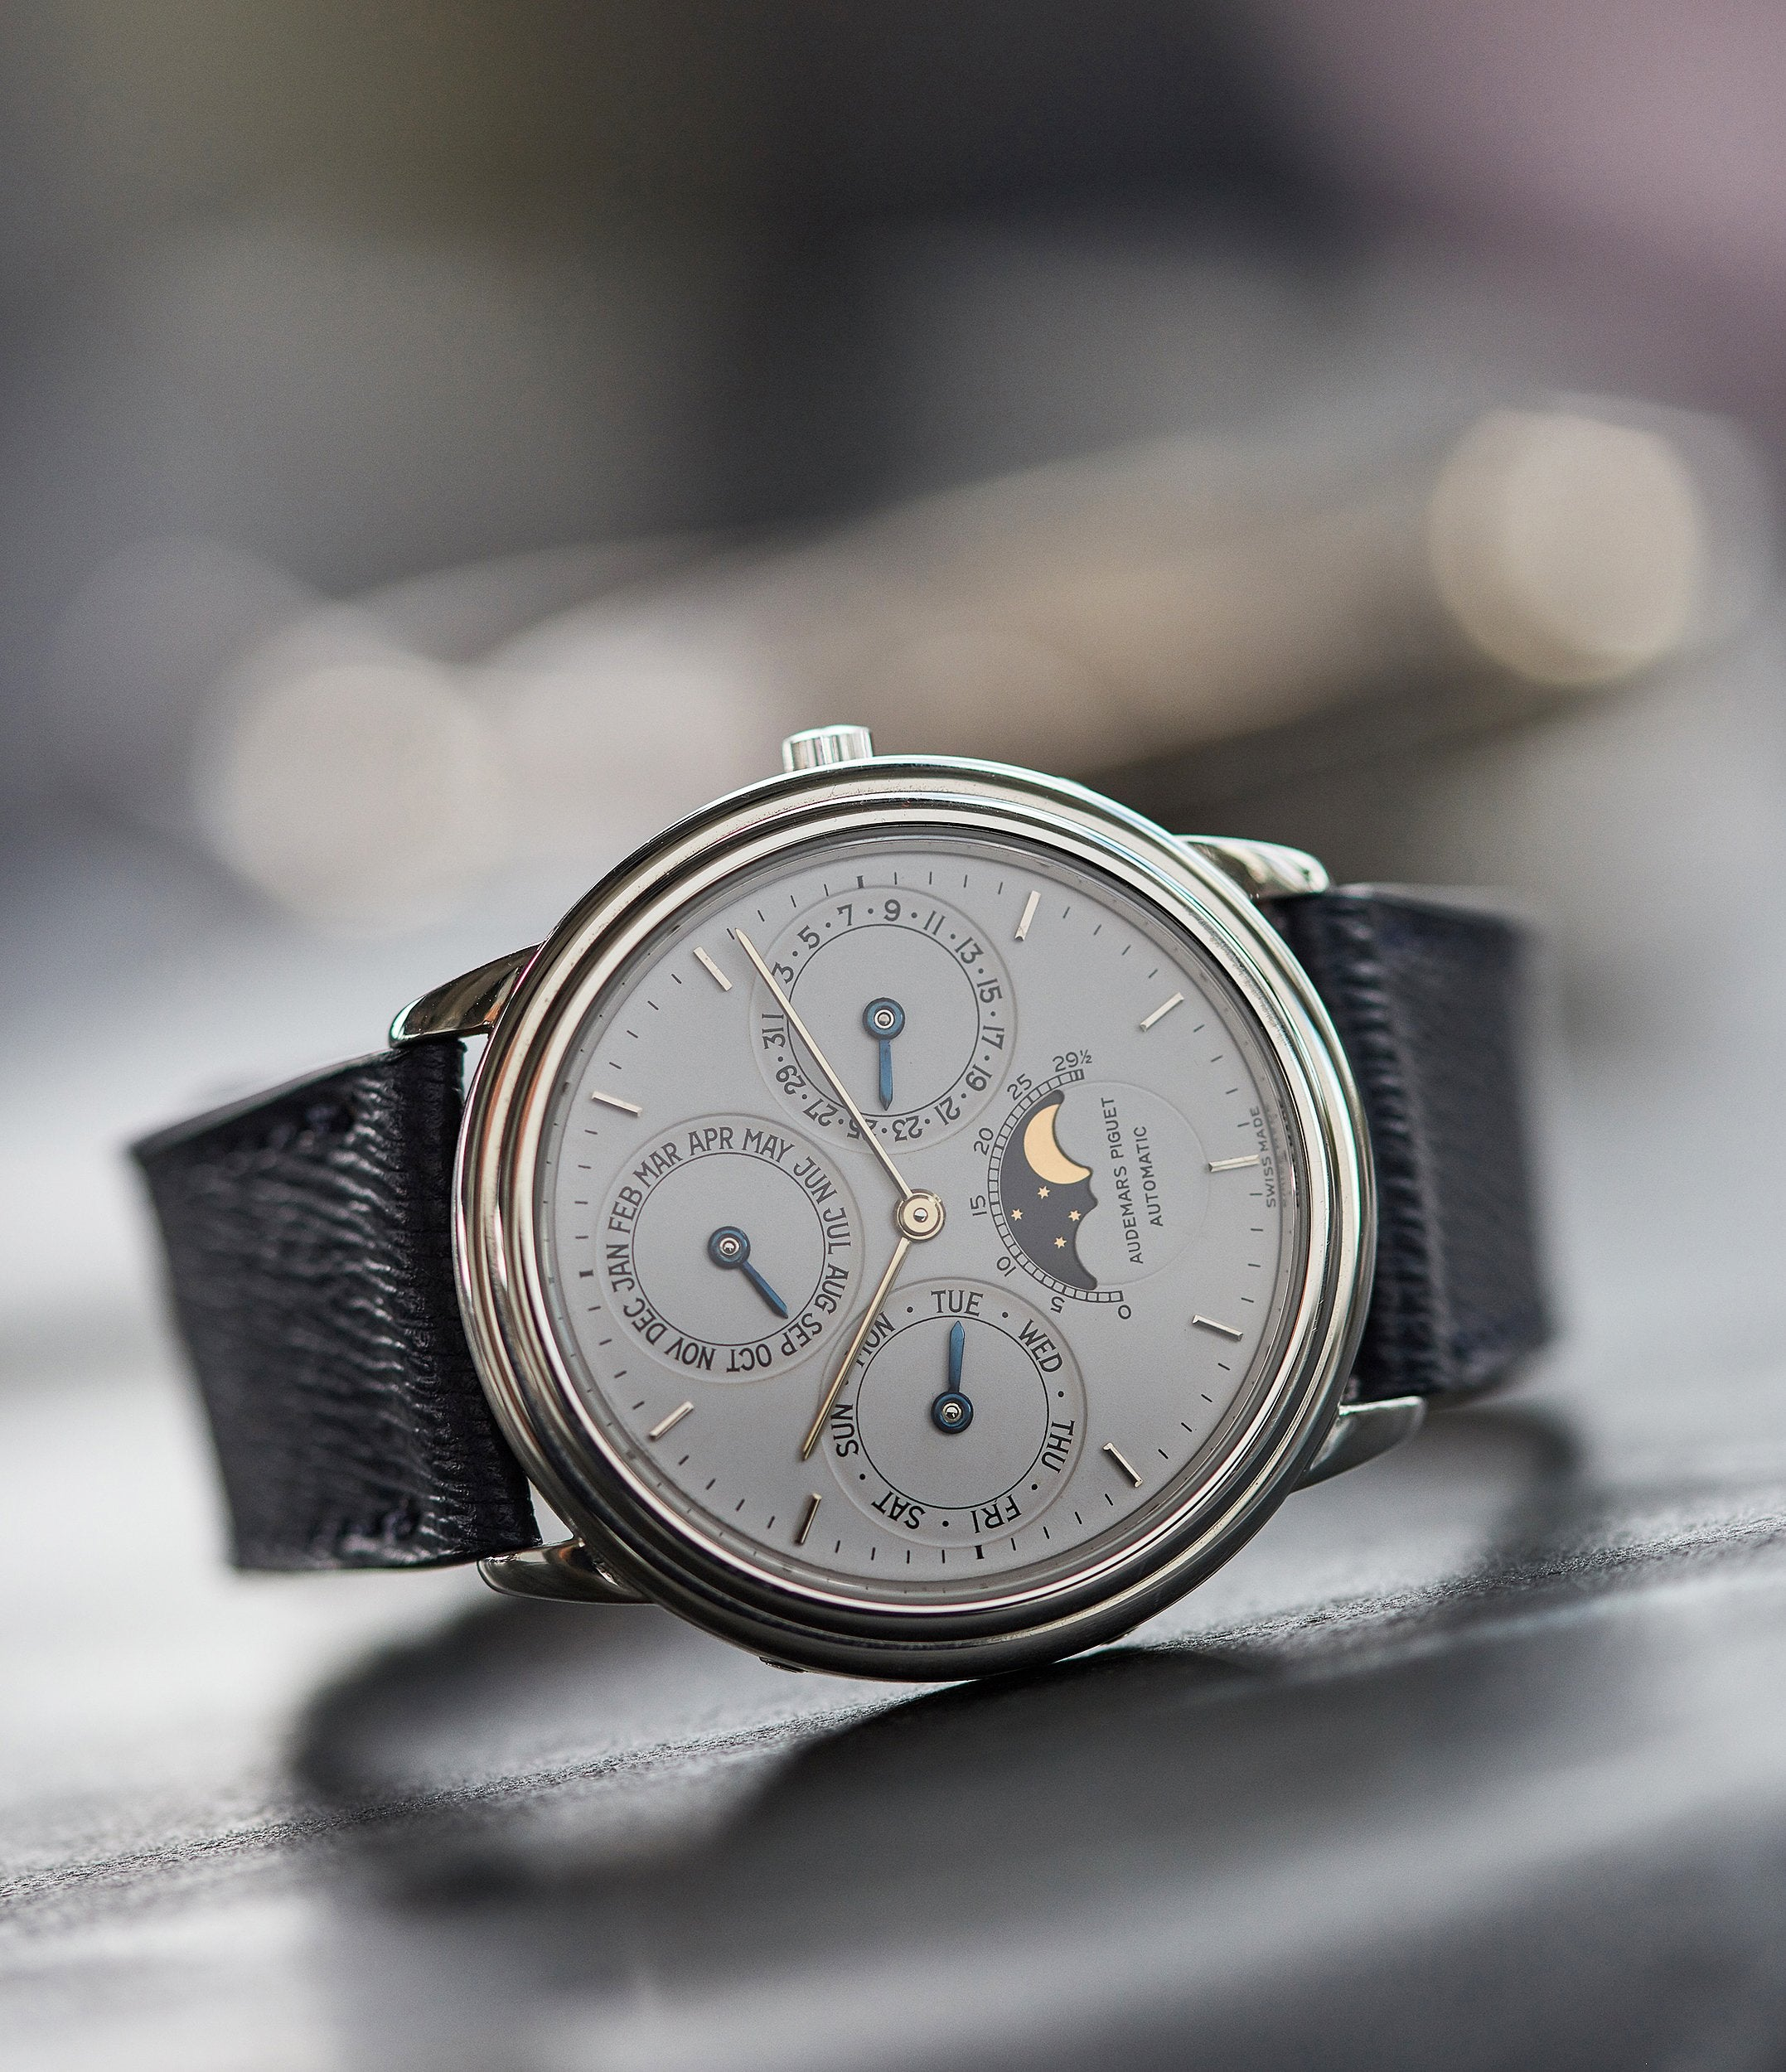 AP Perpetual Calendar PT2567 rare vintage dress watch for sale online A Collected Man London UK specialist rare watches